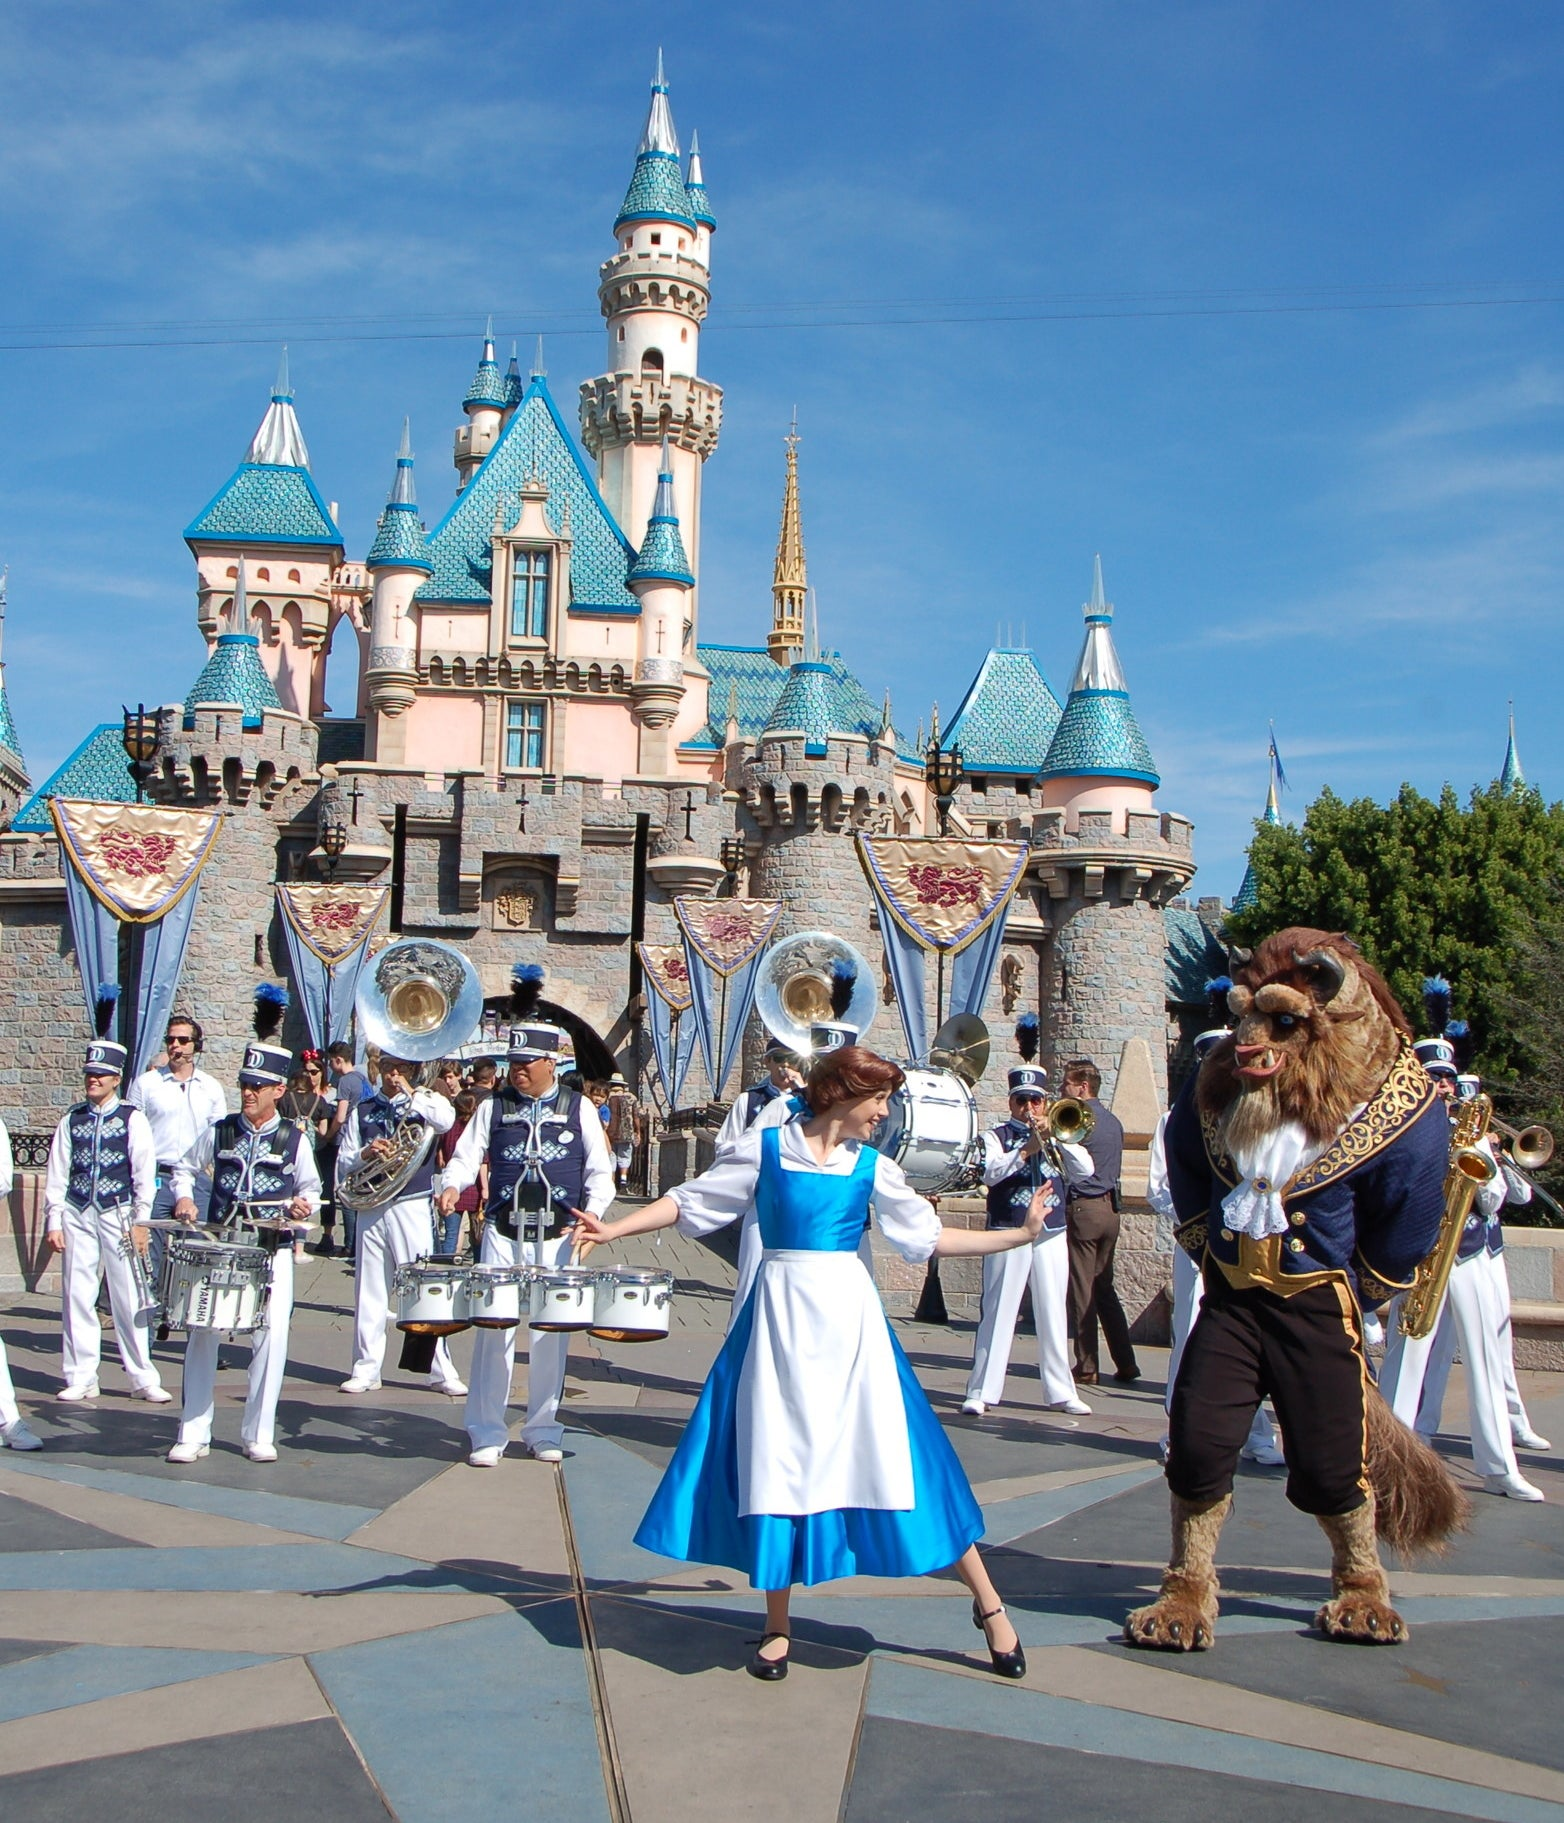 If you're as excited about the live-action Beauty and the Beast film as we are, then you'll be happy to hear that Disneyland has undergone a ~makeover~ to celebrate the film's upcoming release.